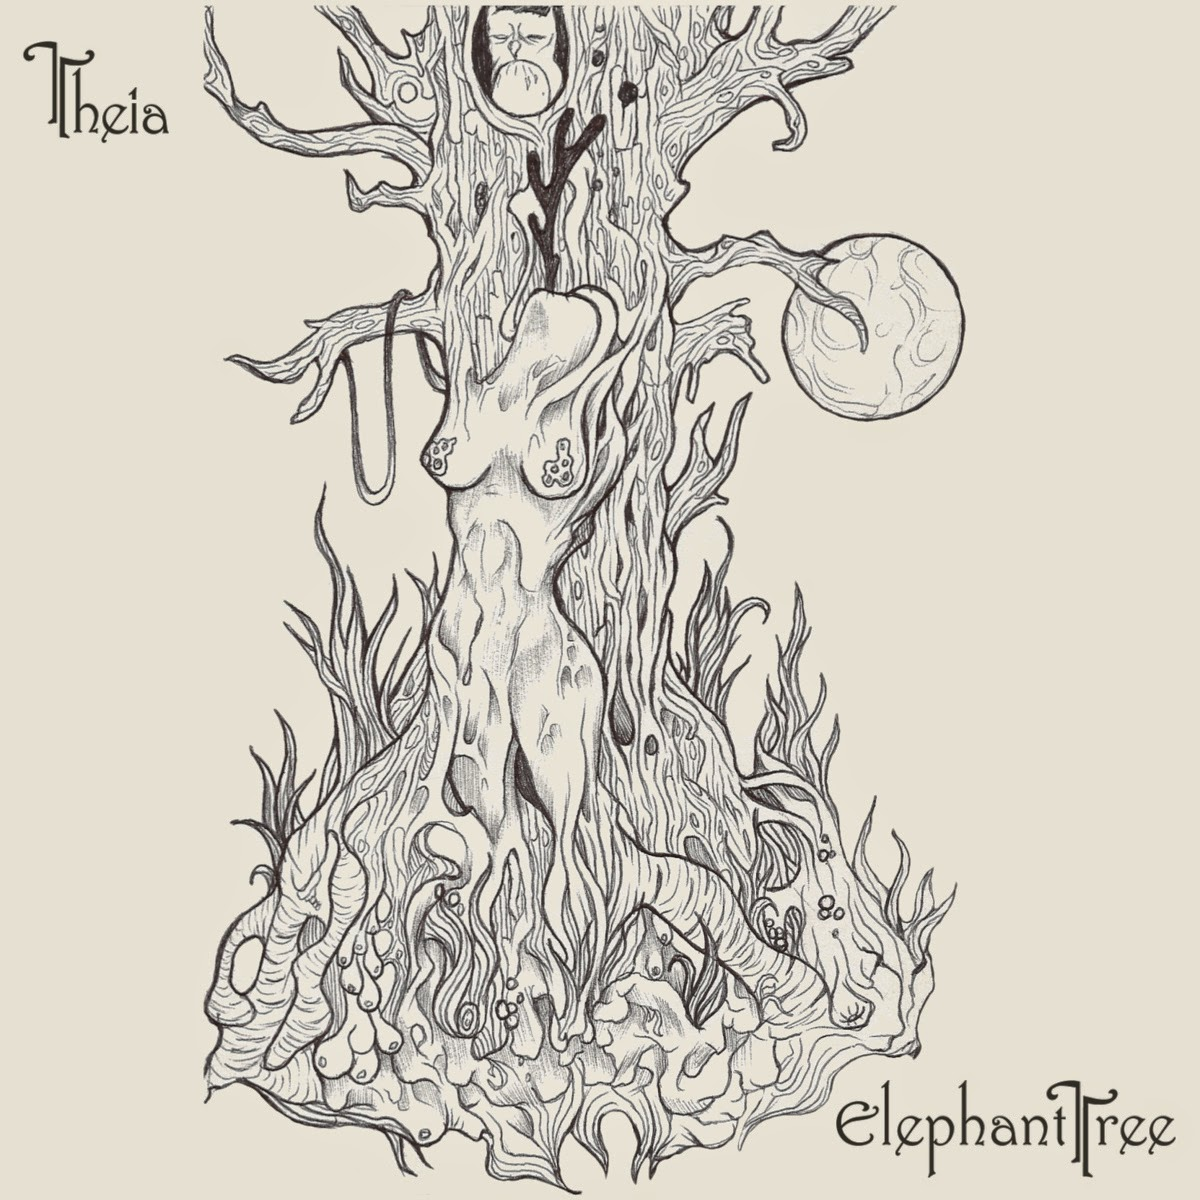 Elephant Tree - Theia